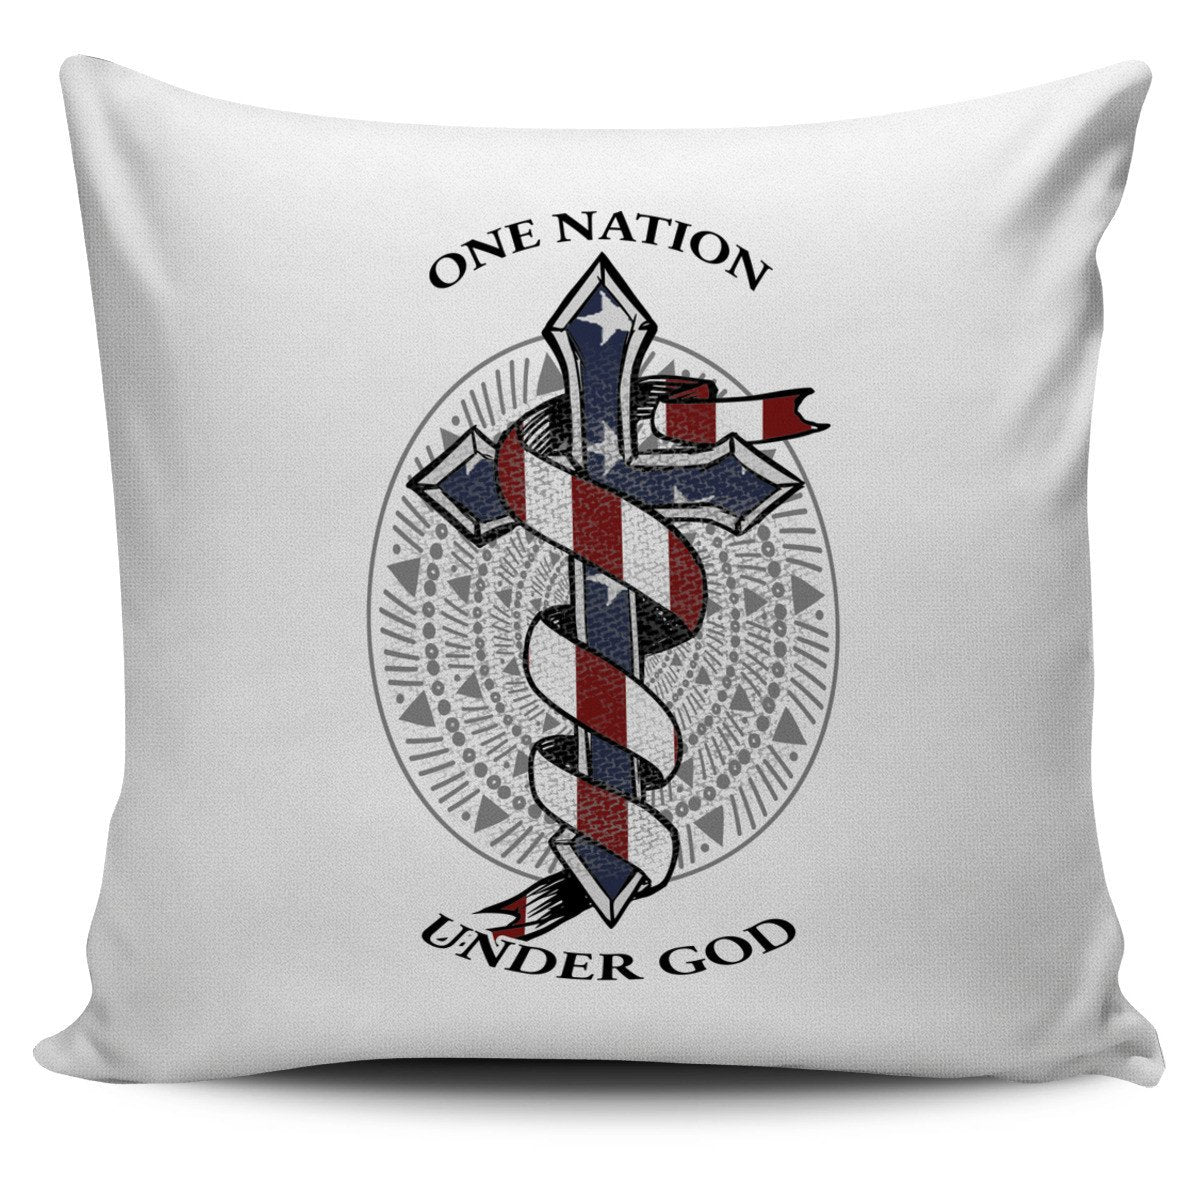 Bible One Nation Under God White Pillow Cover